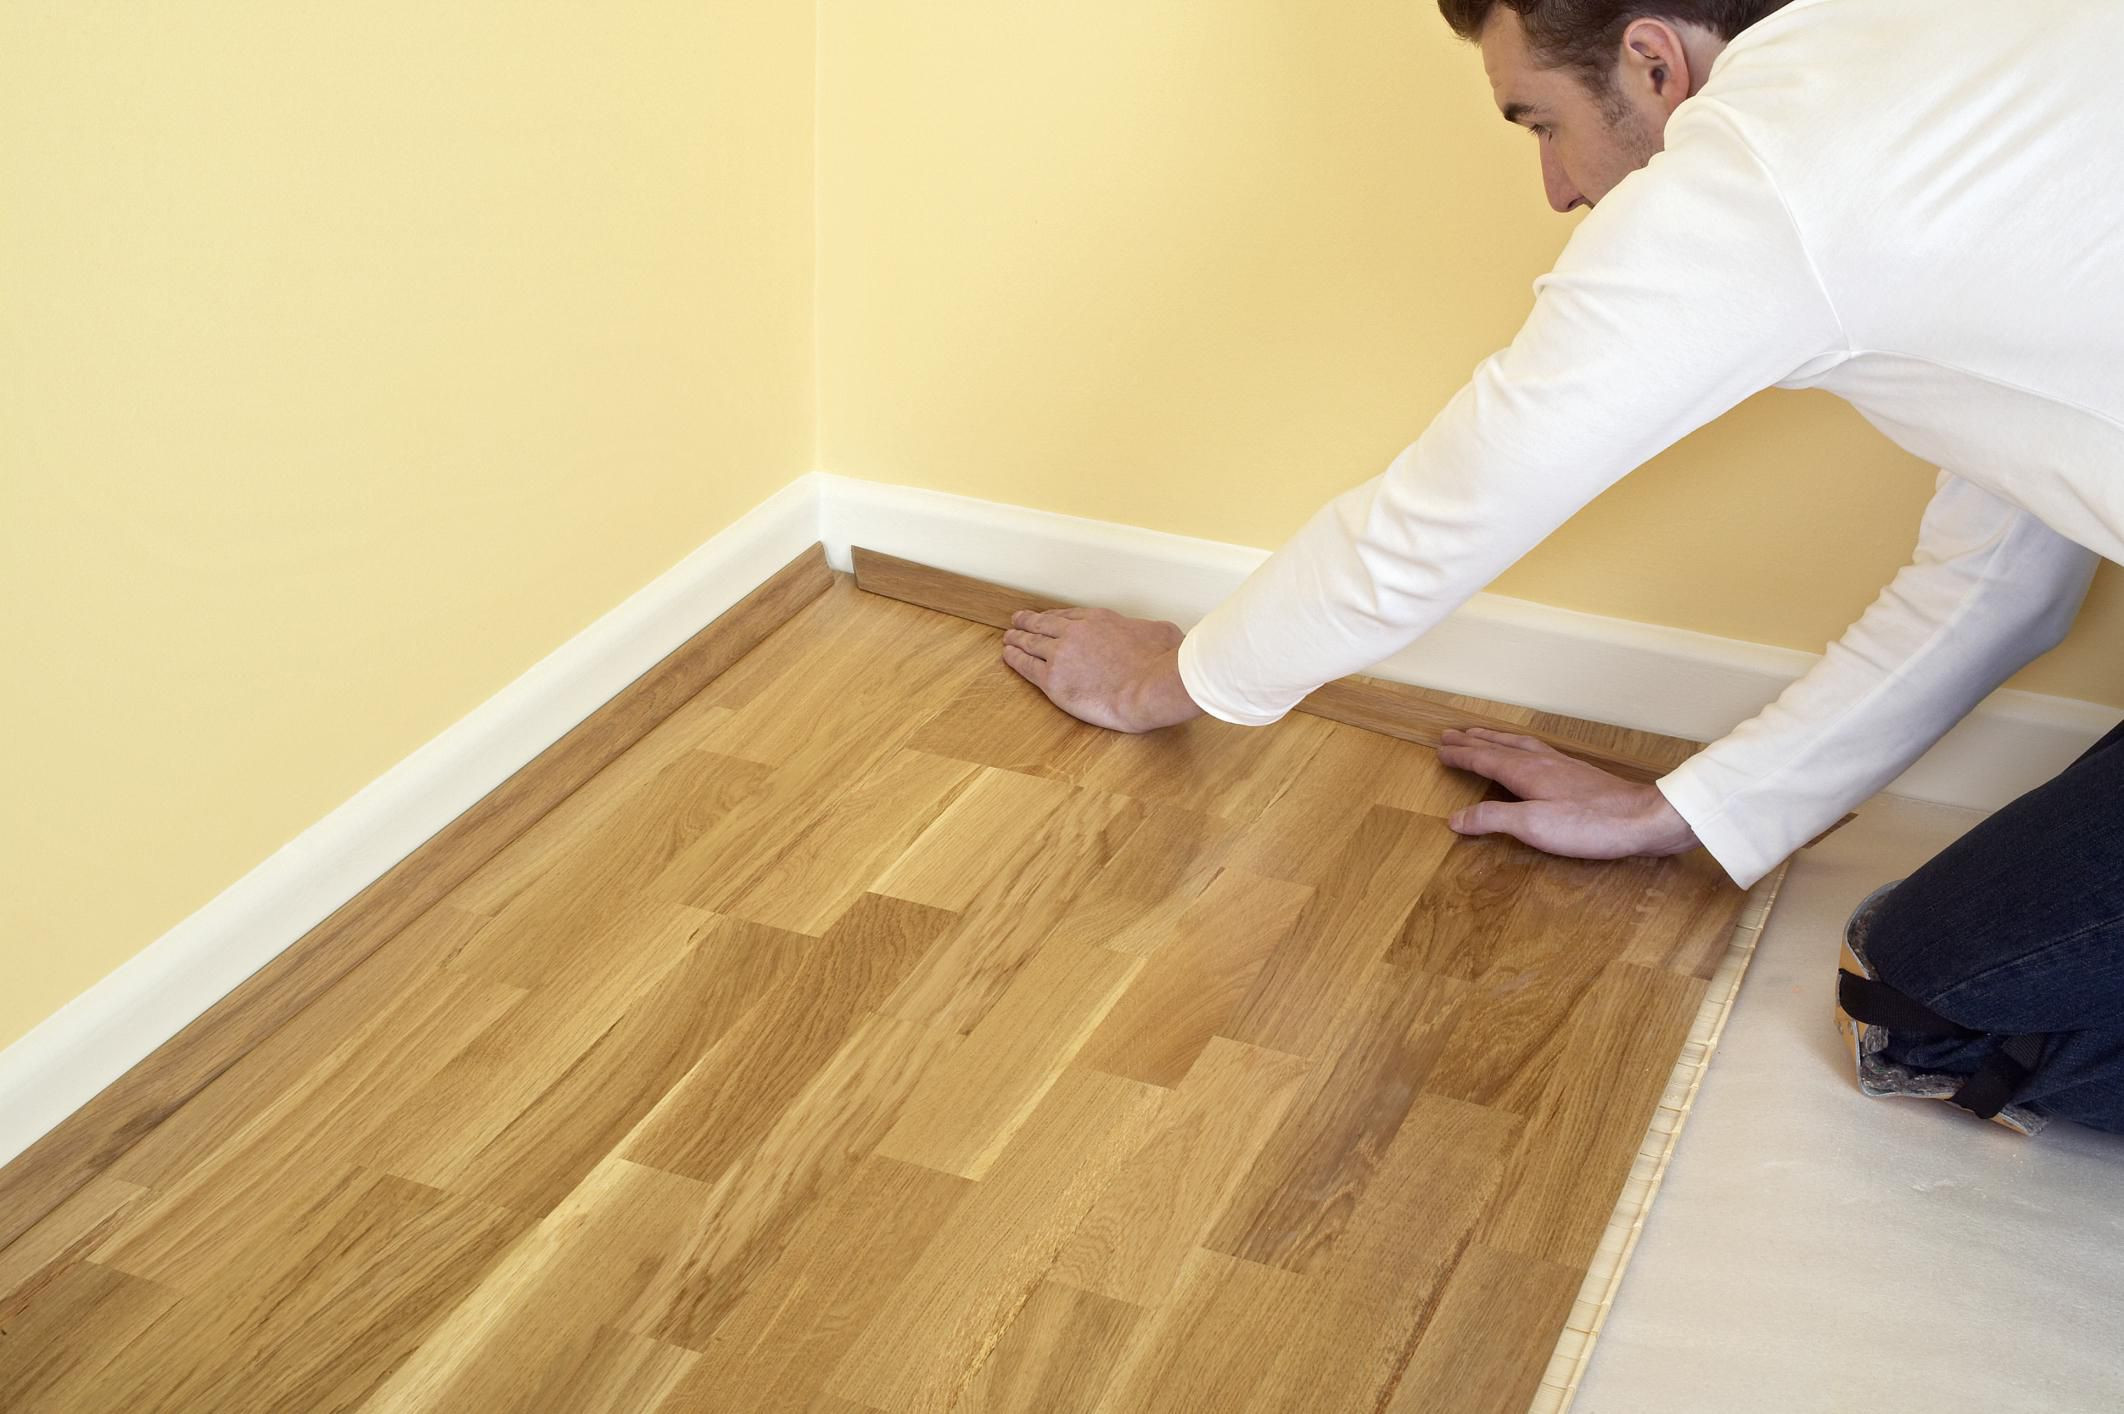 Hardwood Floor Refinishing Allentown Pa Of Basics Of 12 Mm Laminate Flooring within 80033008 56a49f155f9b58b7d0d7e0be